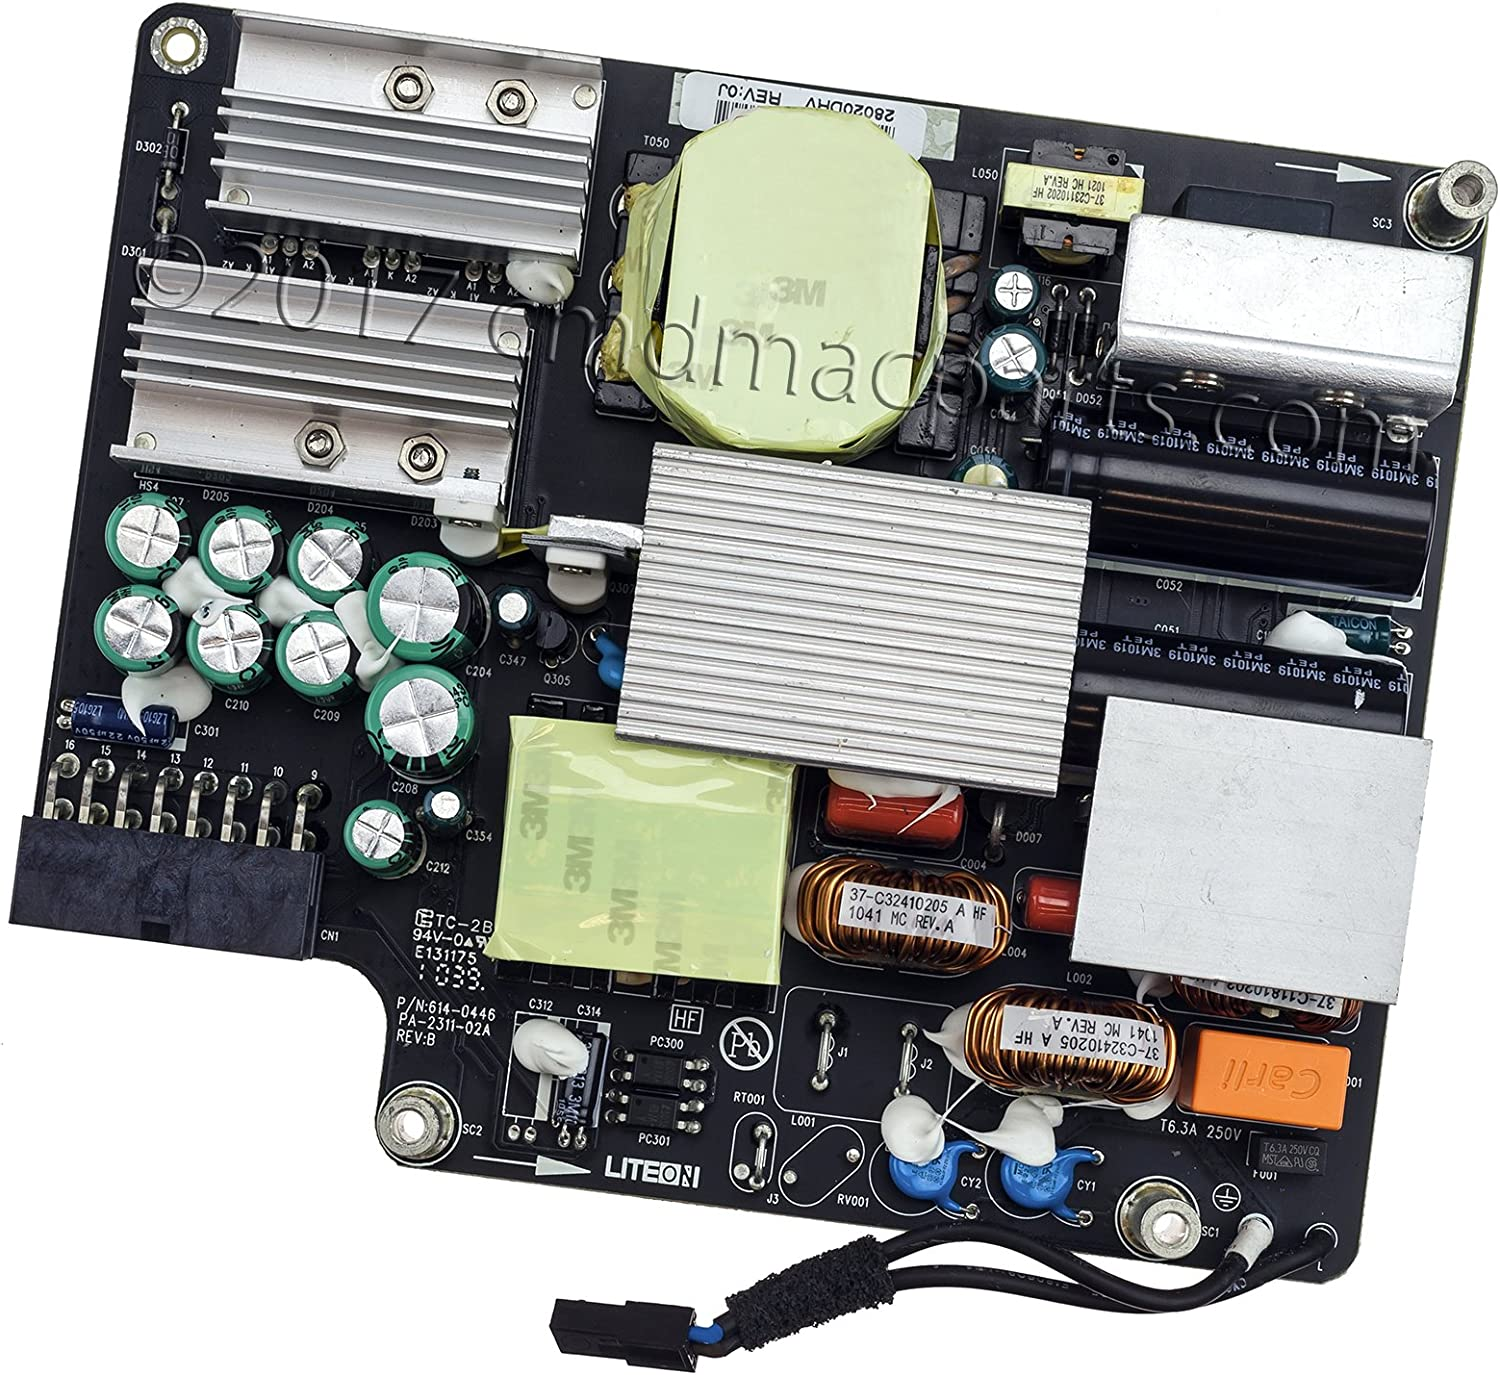 "Odyson - Power Supply (310W) Replacement for iMac 27"" A1312 (Late 2009-Mid 2011)"